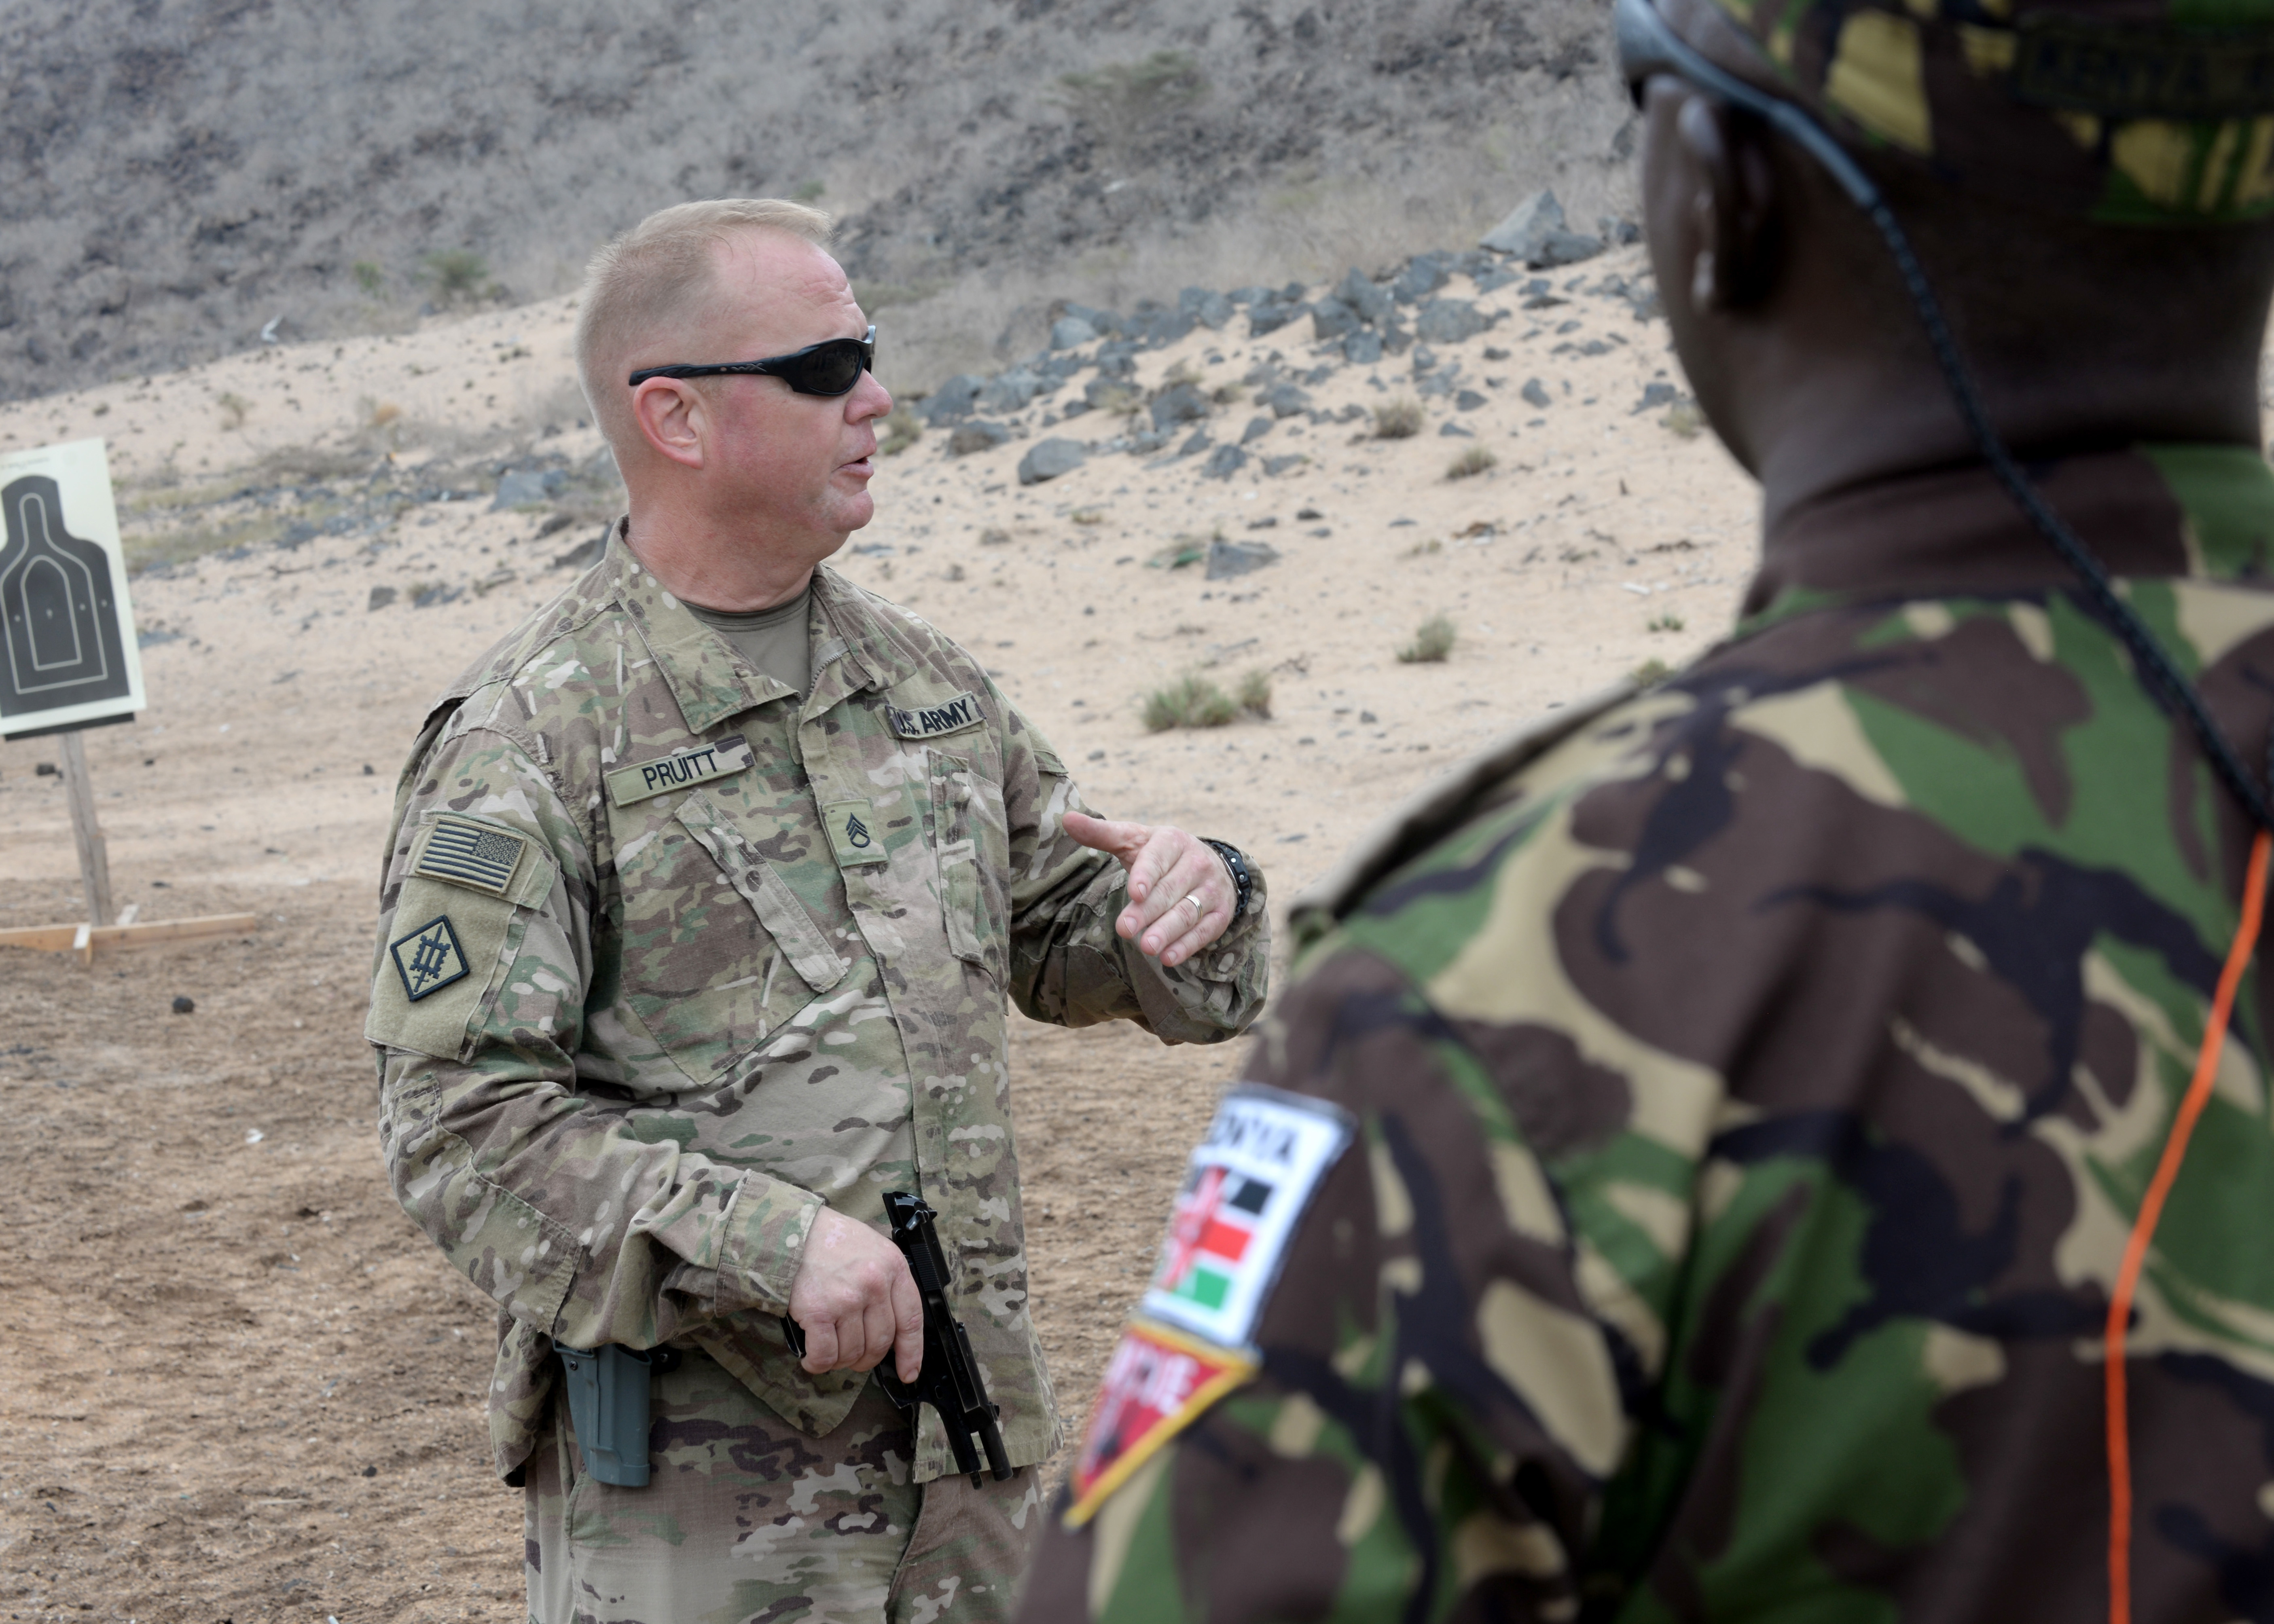 U.S. Army Staff Sgt. Kevin Pruitt, Headquarters Headquarters Company 1-141 Infantry Battalion, Task Force Alamo, Texas National Guard, fly away security team operations noncommissioned officer, deployed to Combined Joint Task Force-Horn of Africa (CJTF-HOA), briefs CJTF-HOA foreign liaison officers, about the Beretta M9 pistol during weapons familiarization at the Djibouti Range Complex, Arta, Djibouti, Feb. 16, 2019. The course gave the foreign liaison officers an insight on the Beretta M9 pistol and stance techniques used by U.S. military members. (U.S. Air Force photo by Staff Sgt. Franklin R. Ramos)